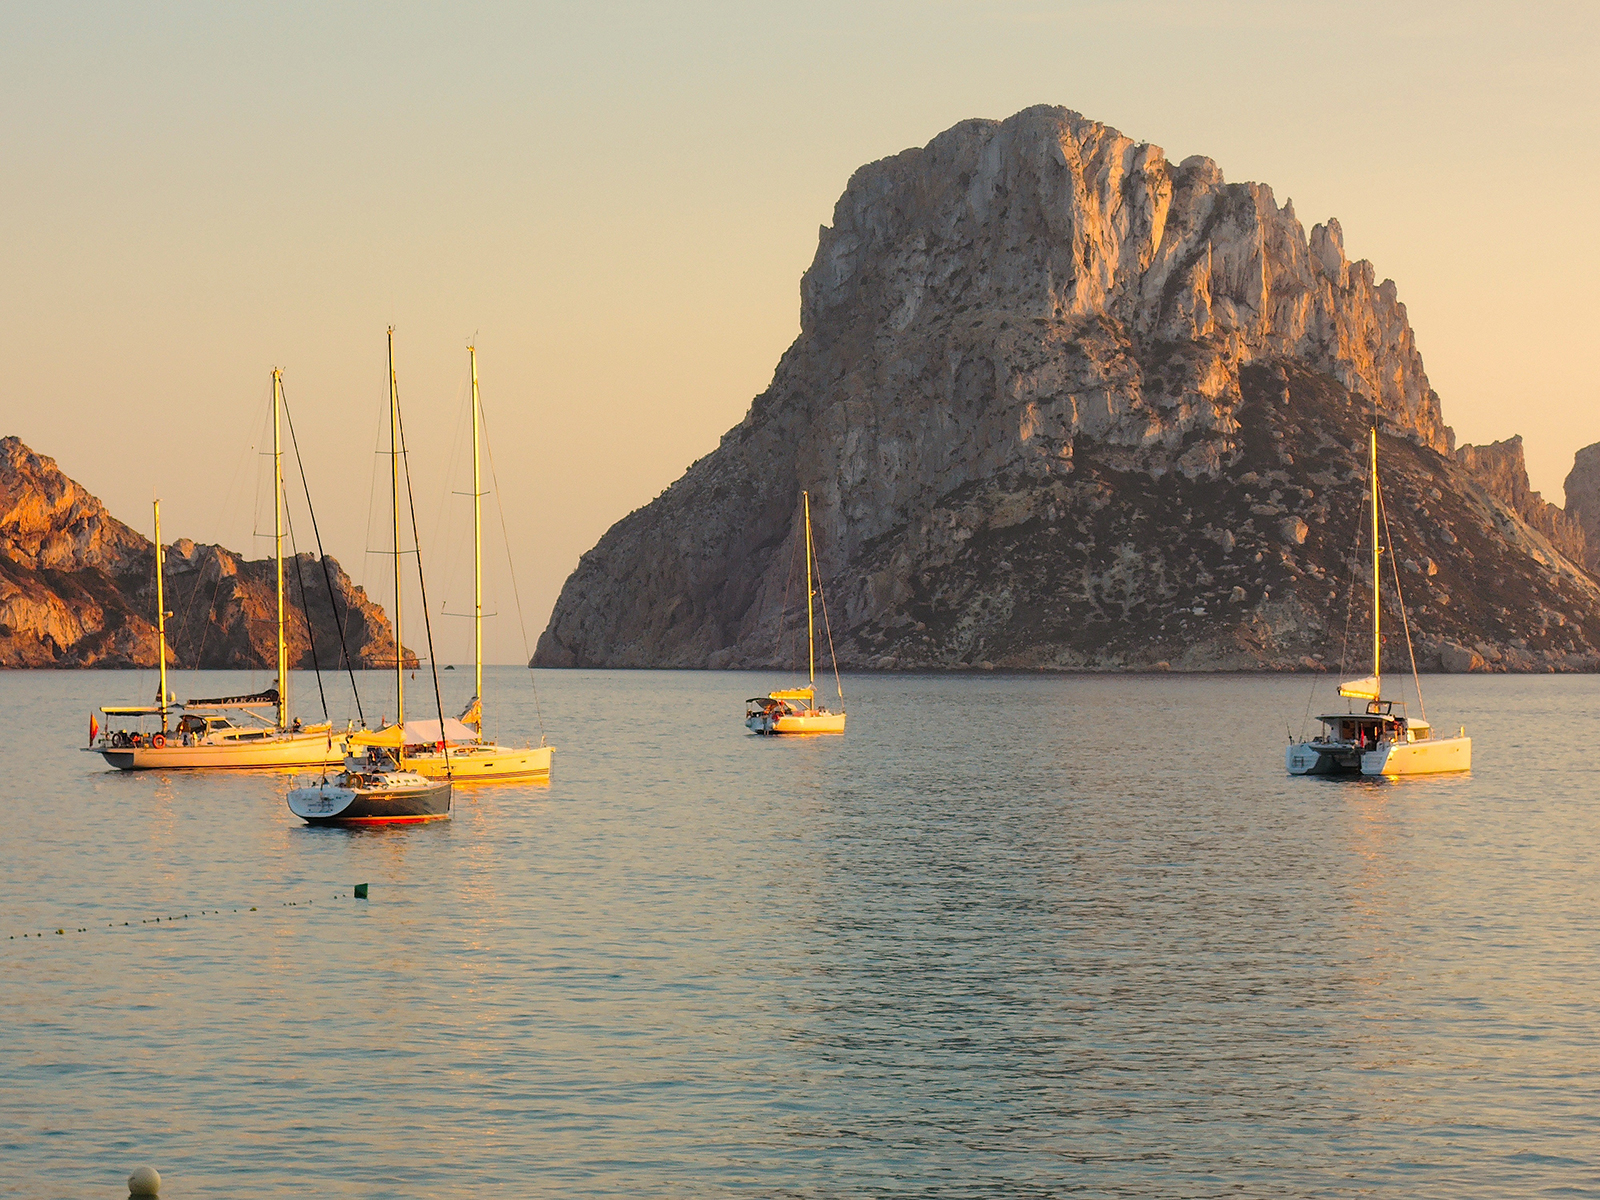 Ibiza Es Vedra from Cala d'Hort Balearic Islands